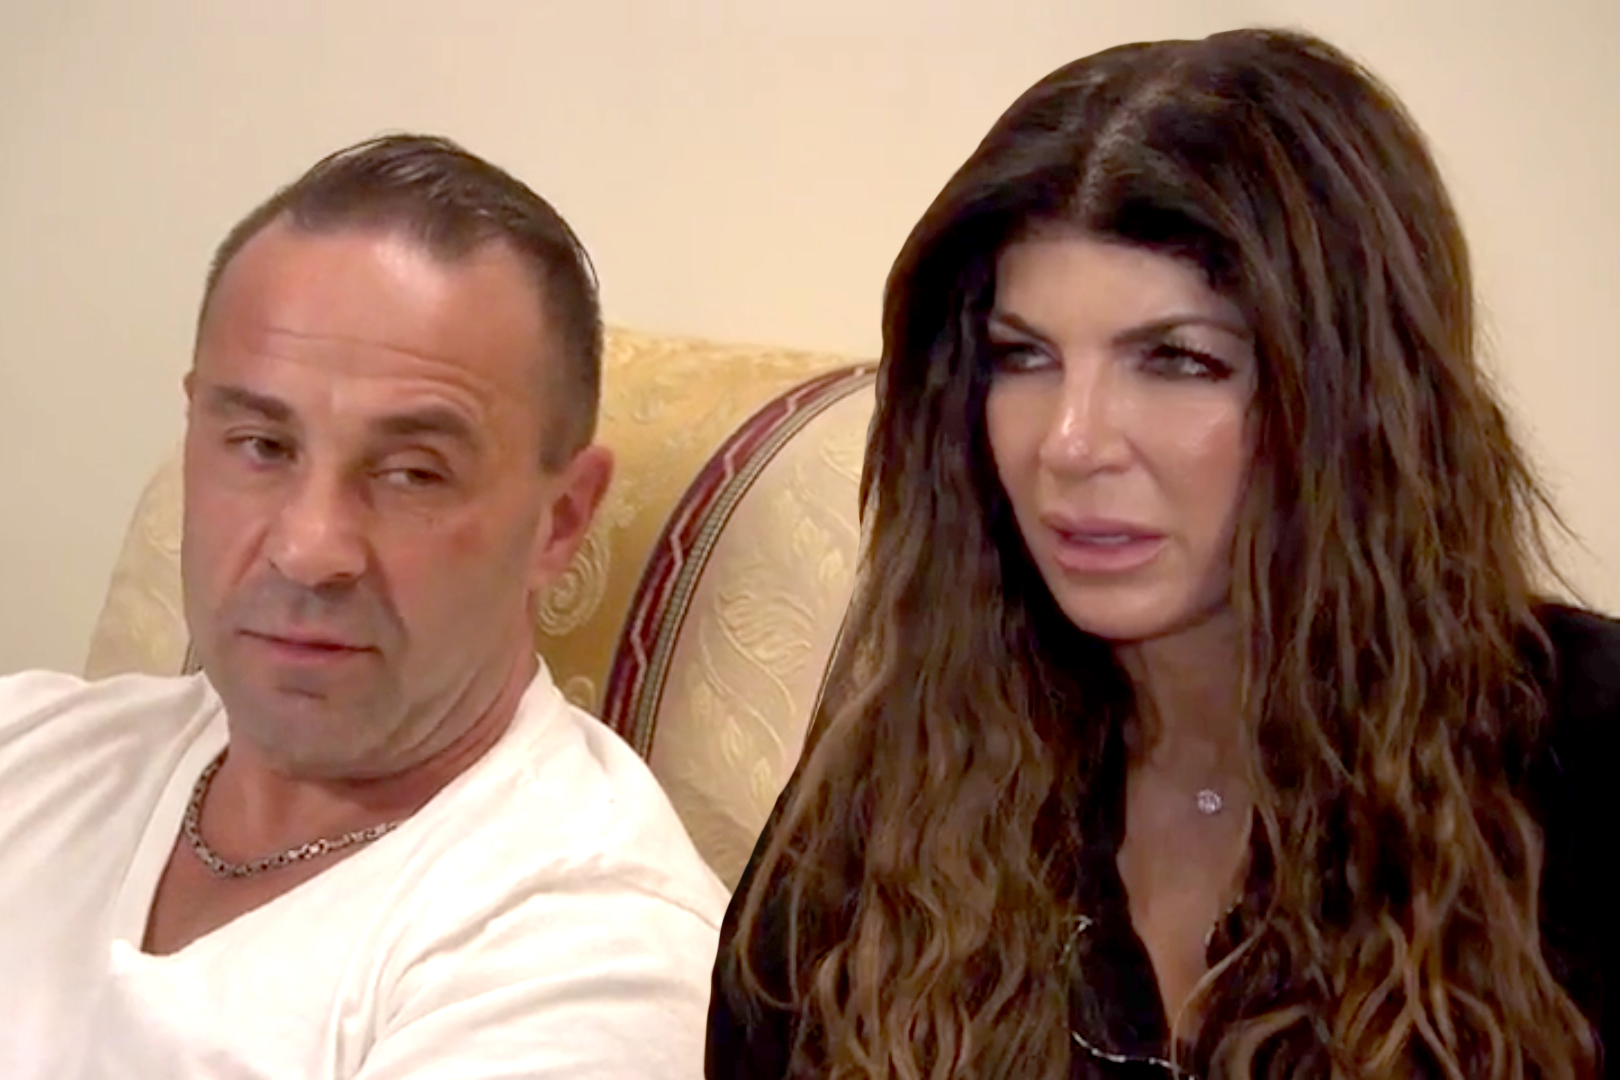 teresa-giudice-not-ready-for-a-serious-relationship-after-joe-divorce-gets-finalized-heres-why